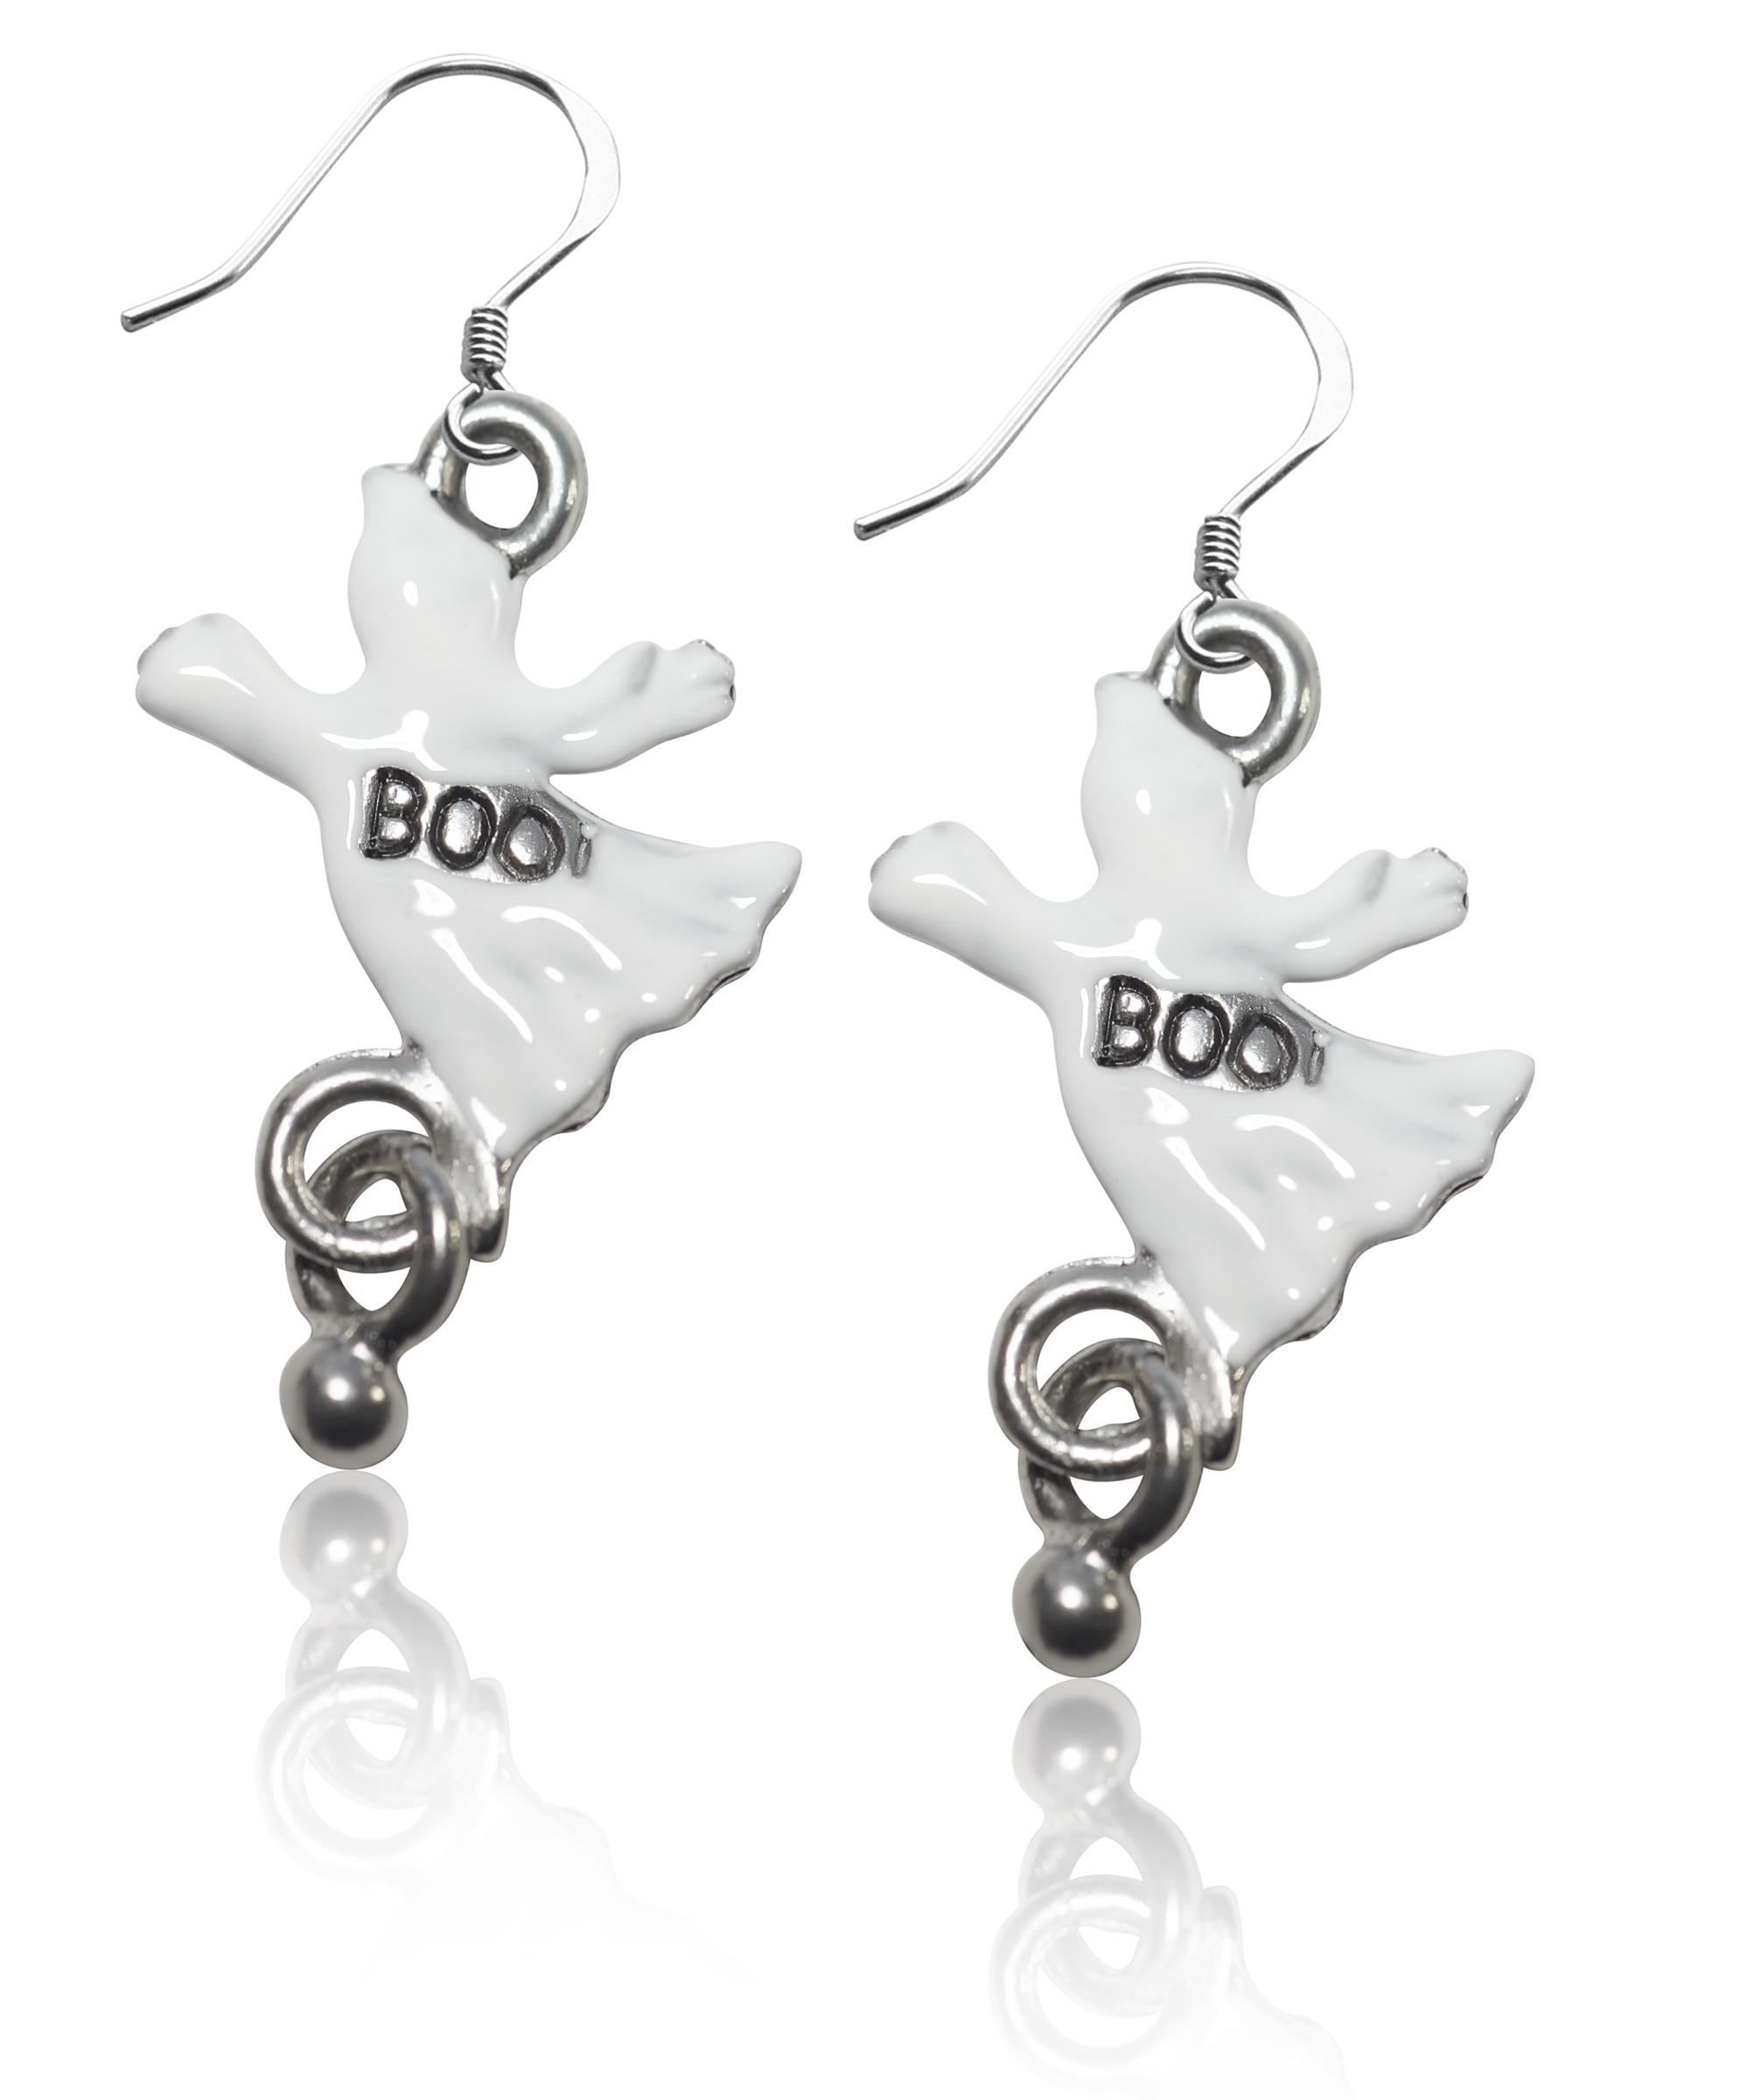 laserduck ghost earrings product